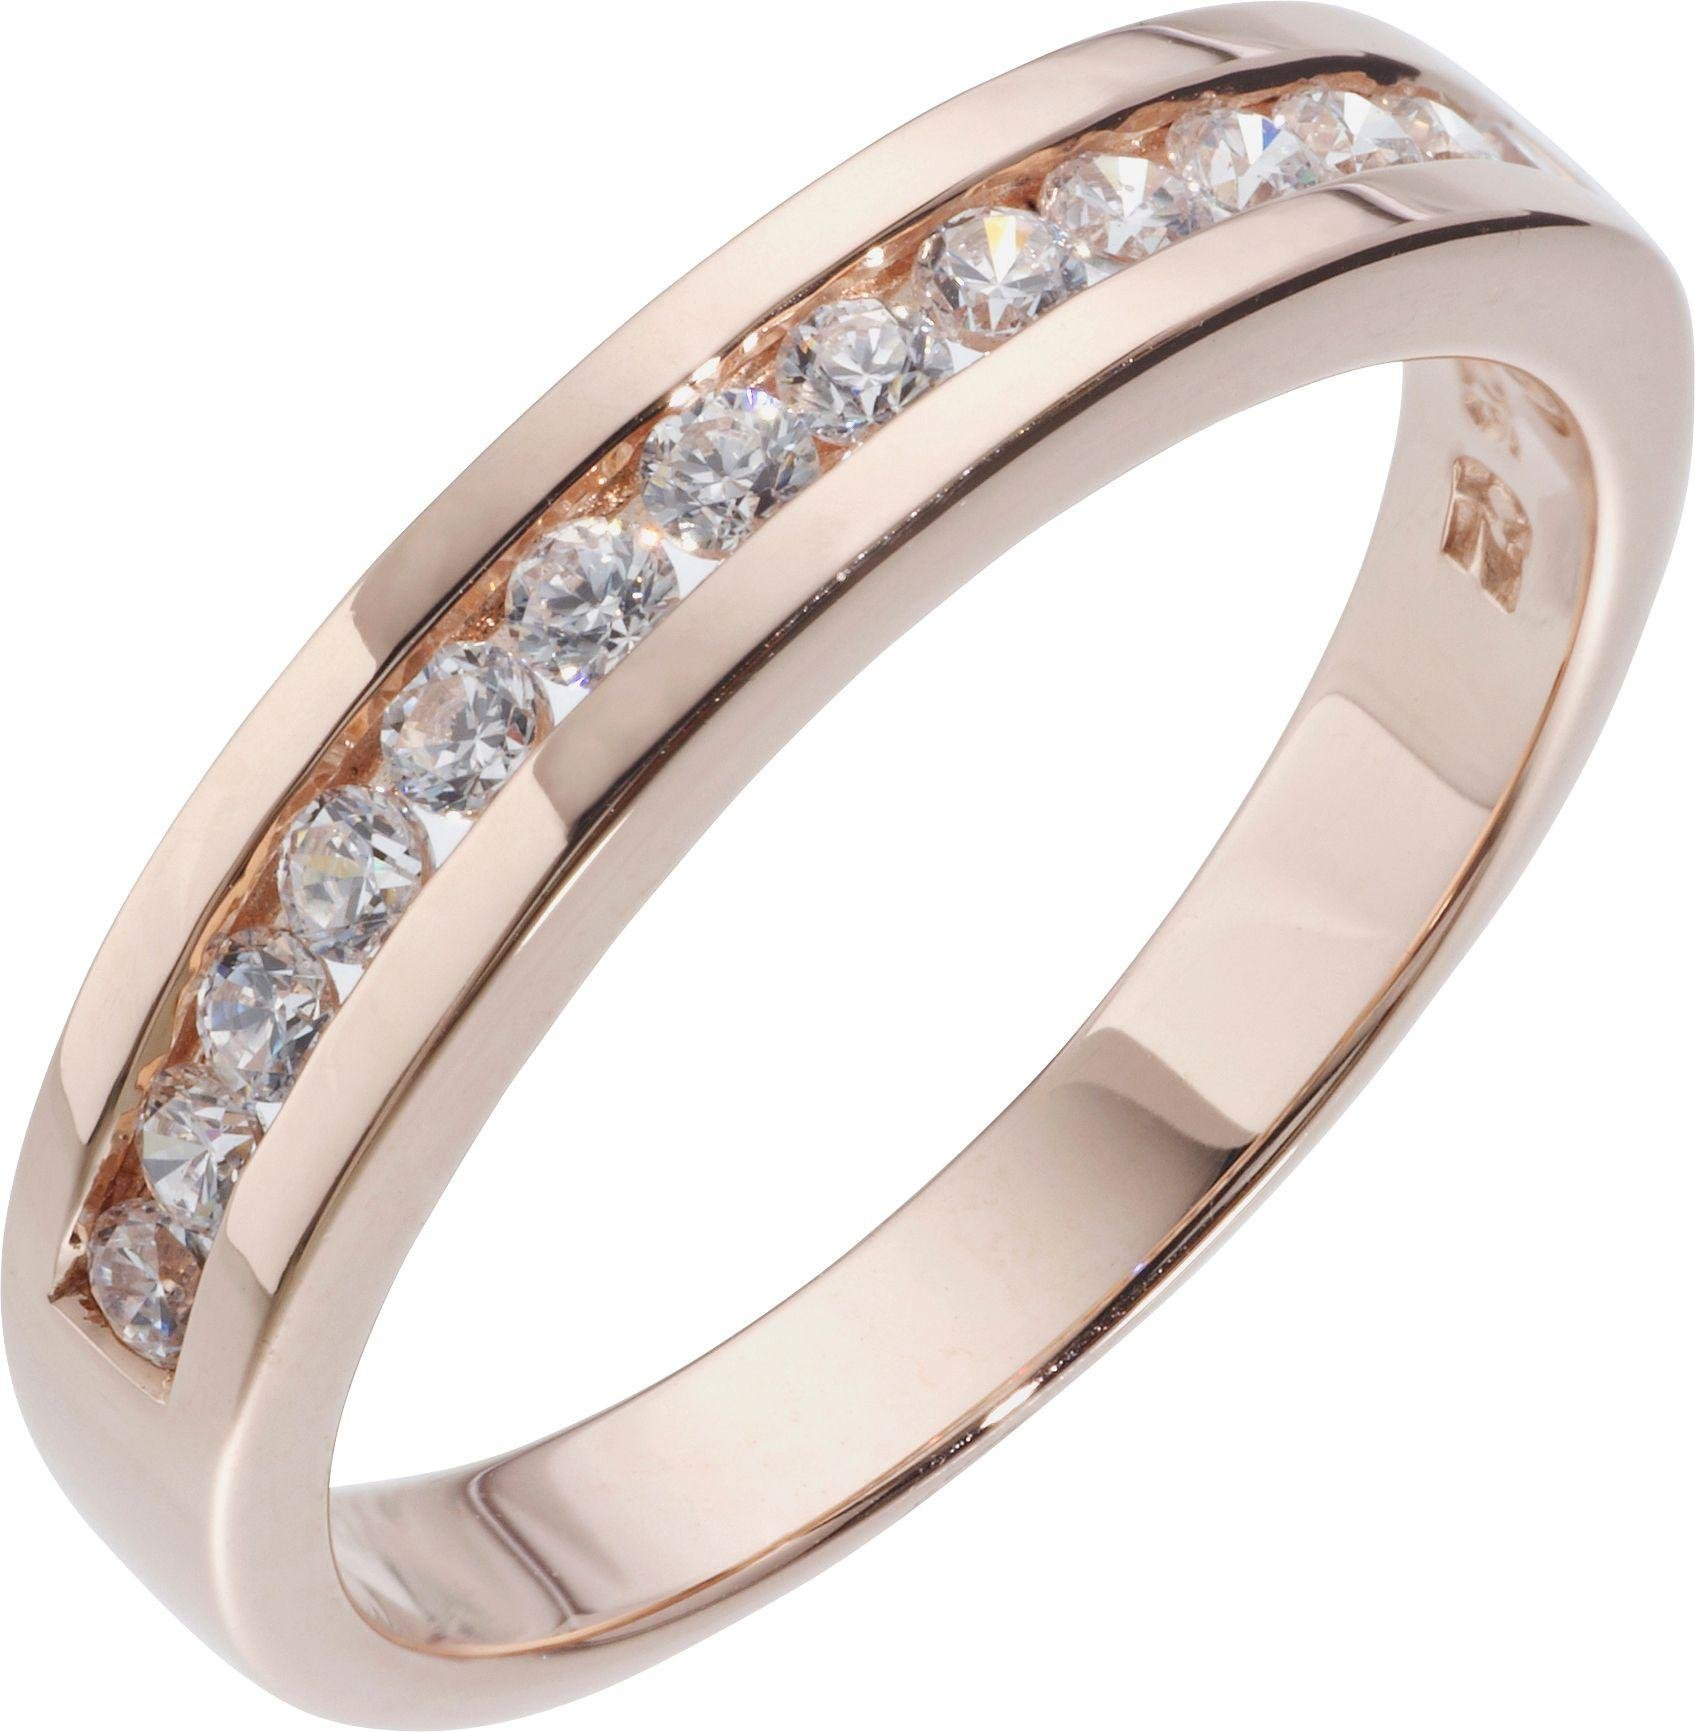 Kmart Wedding Ring Sets Design Ideas